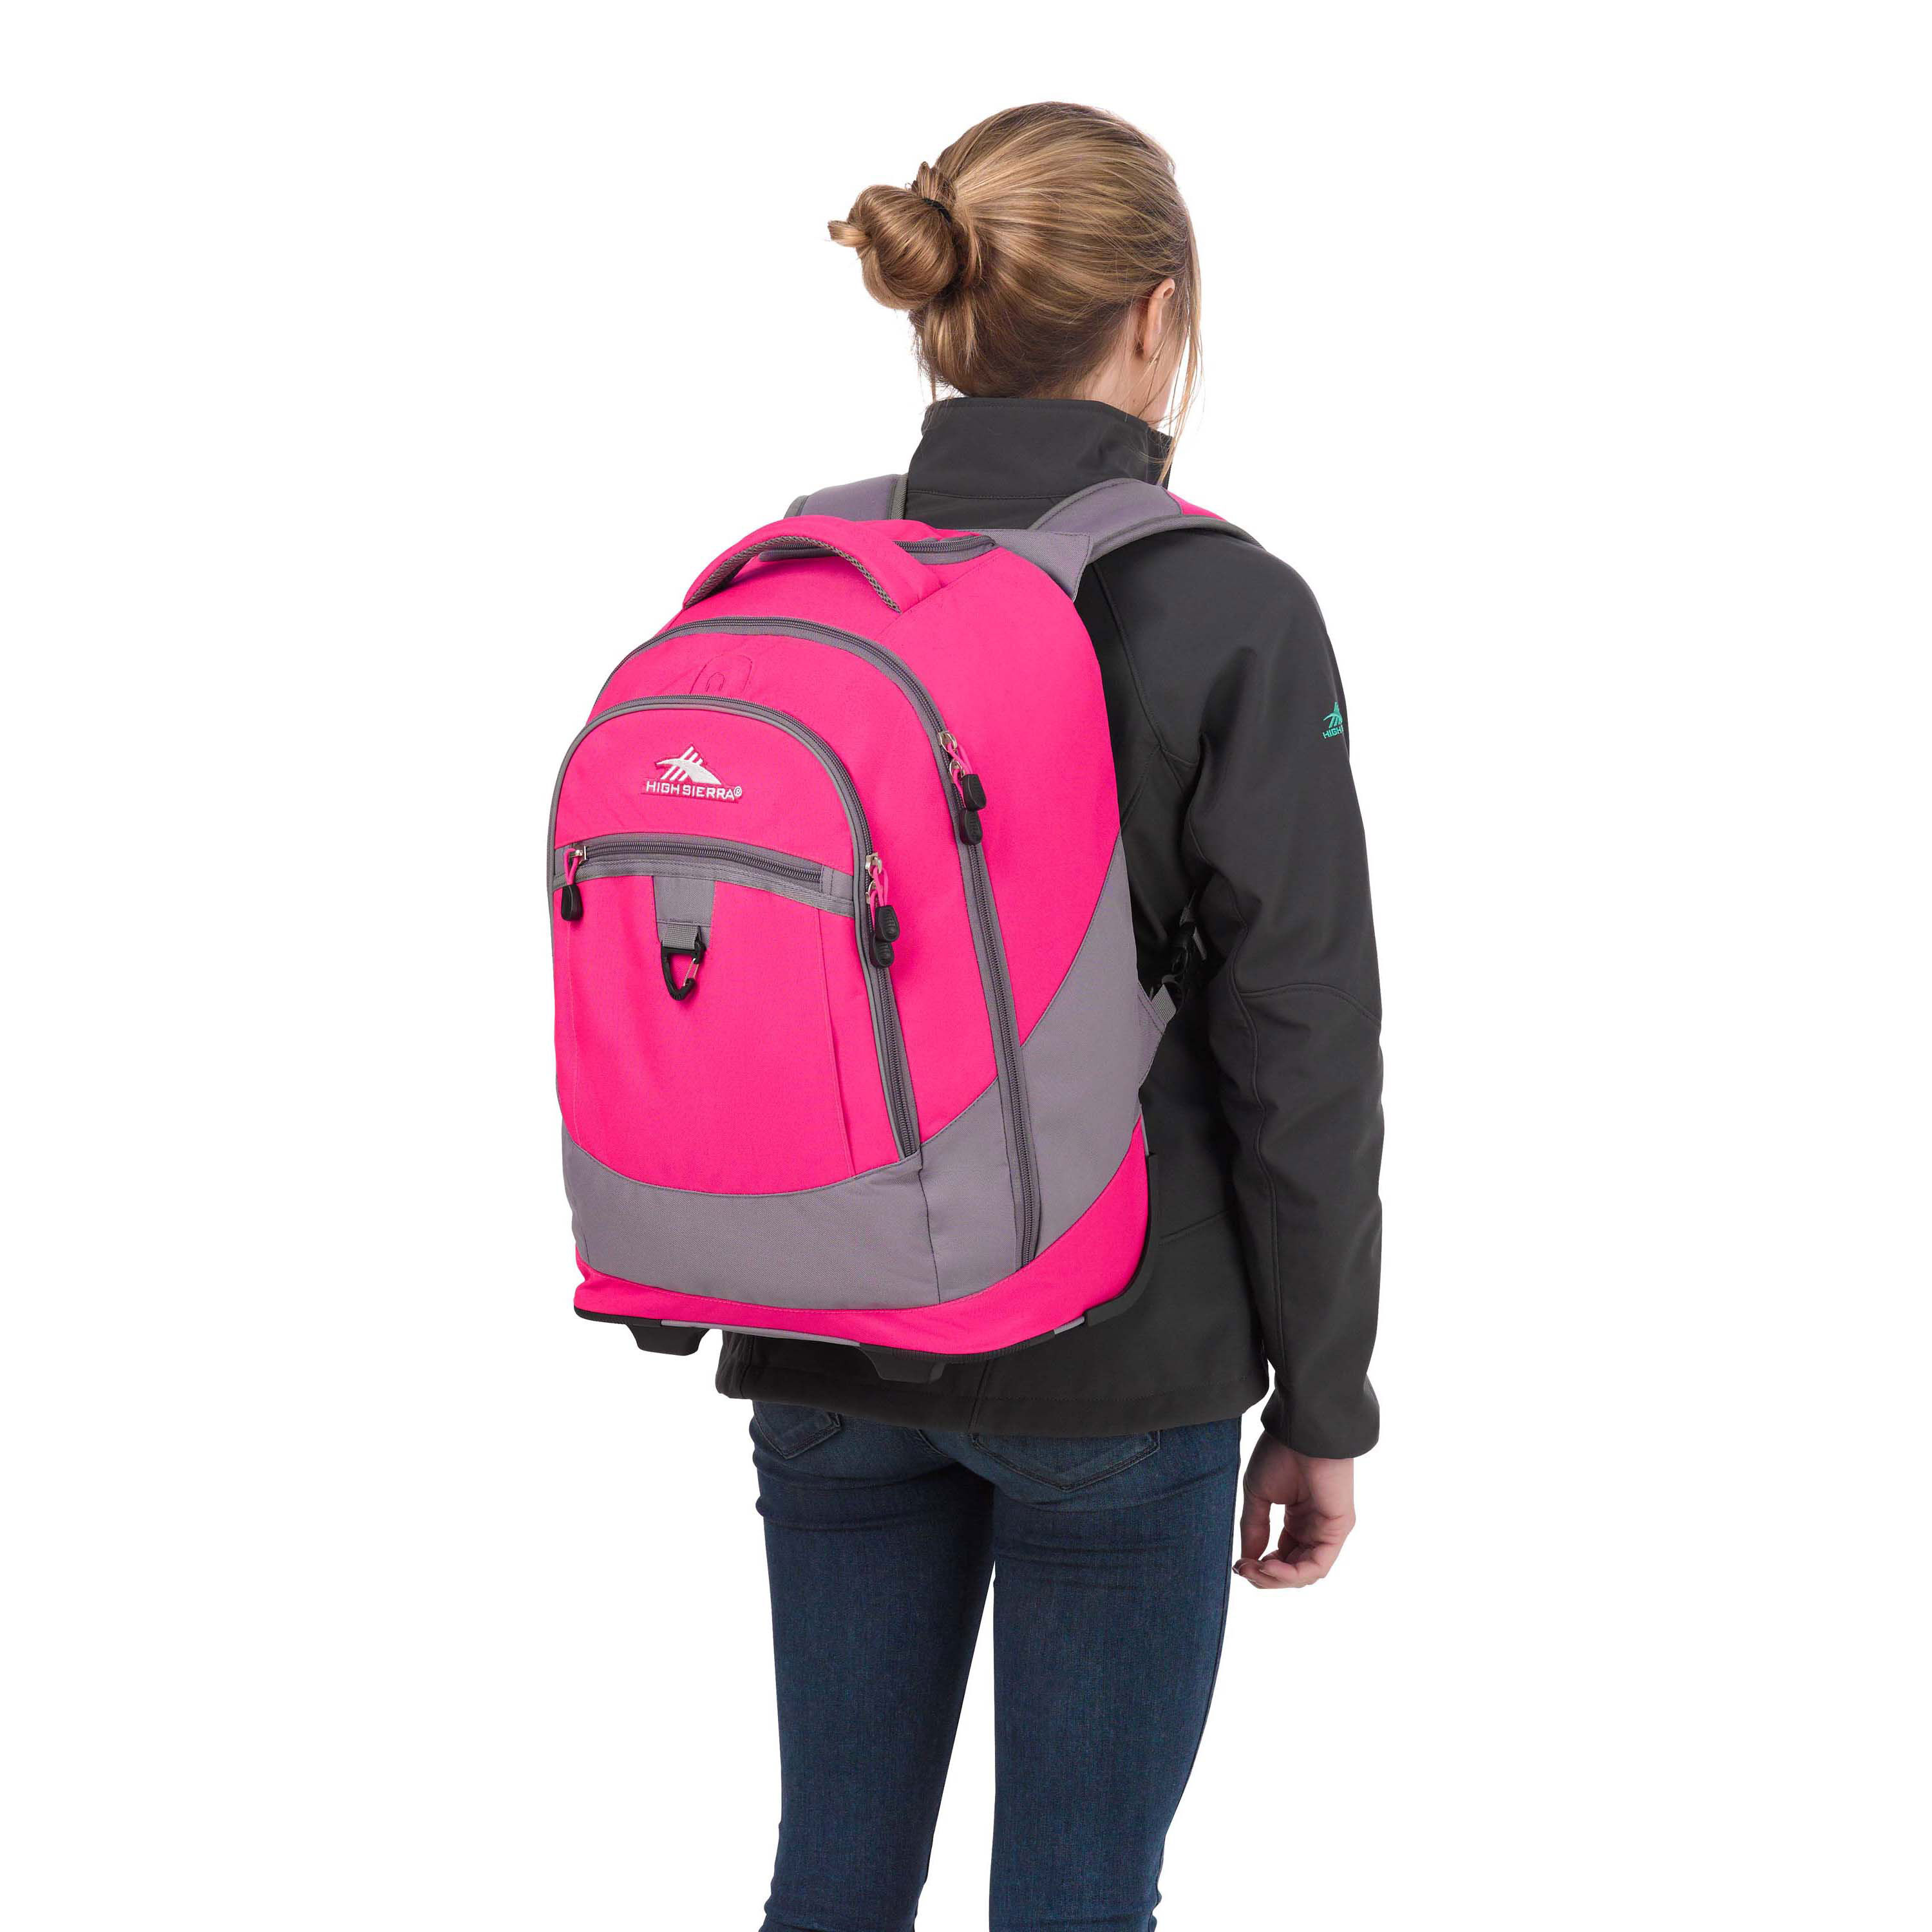 high sierra chaser wheeled backpack in the color flamingo pink